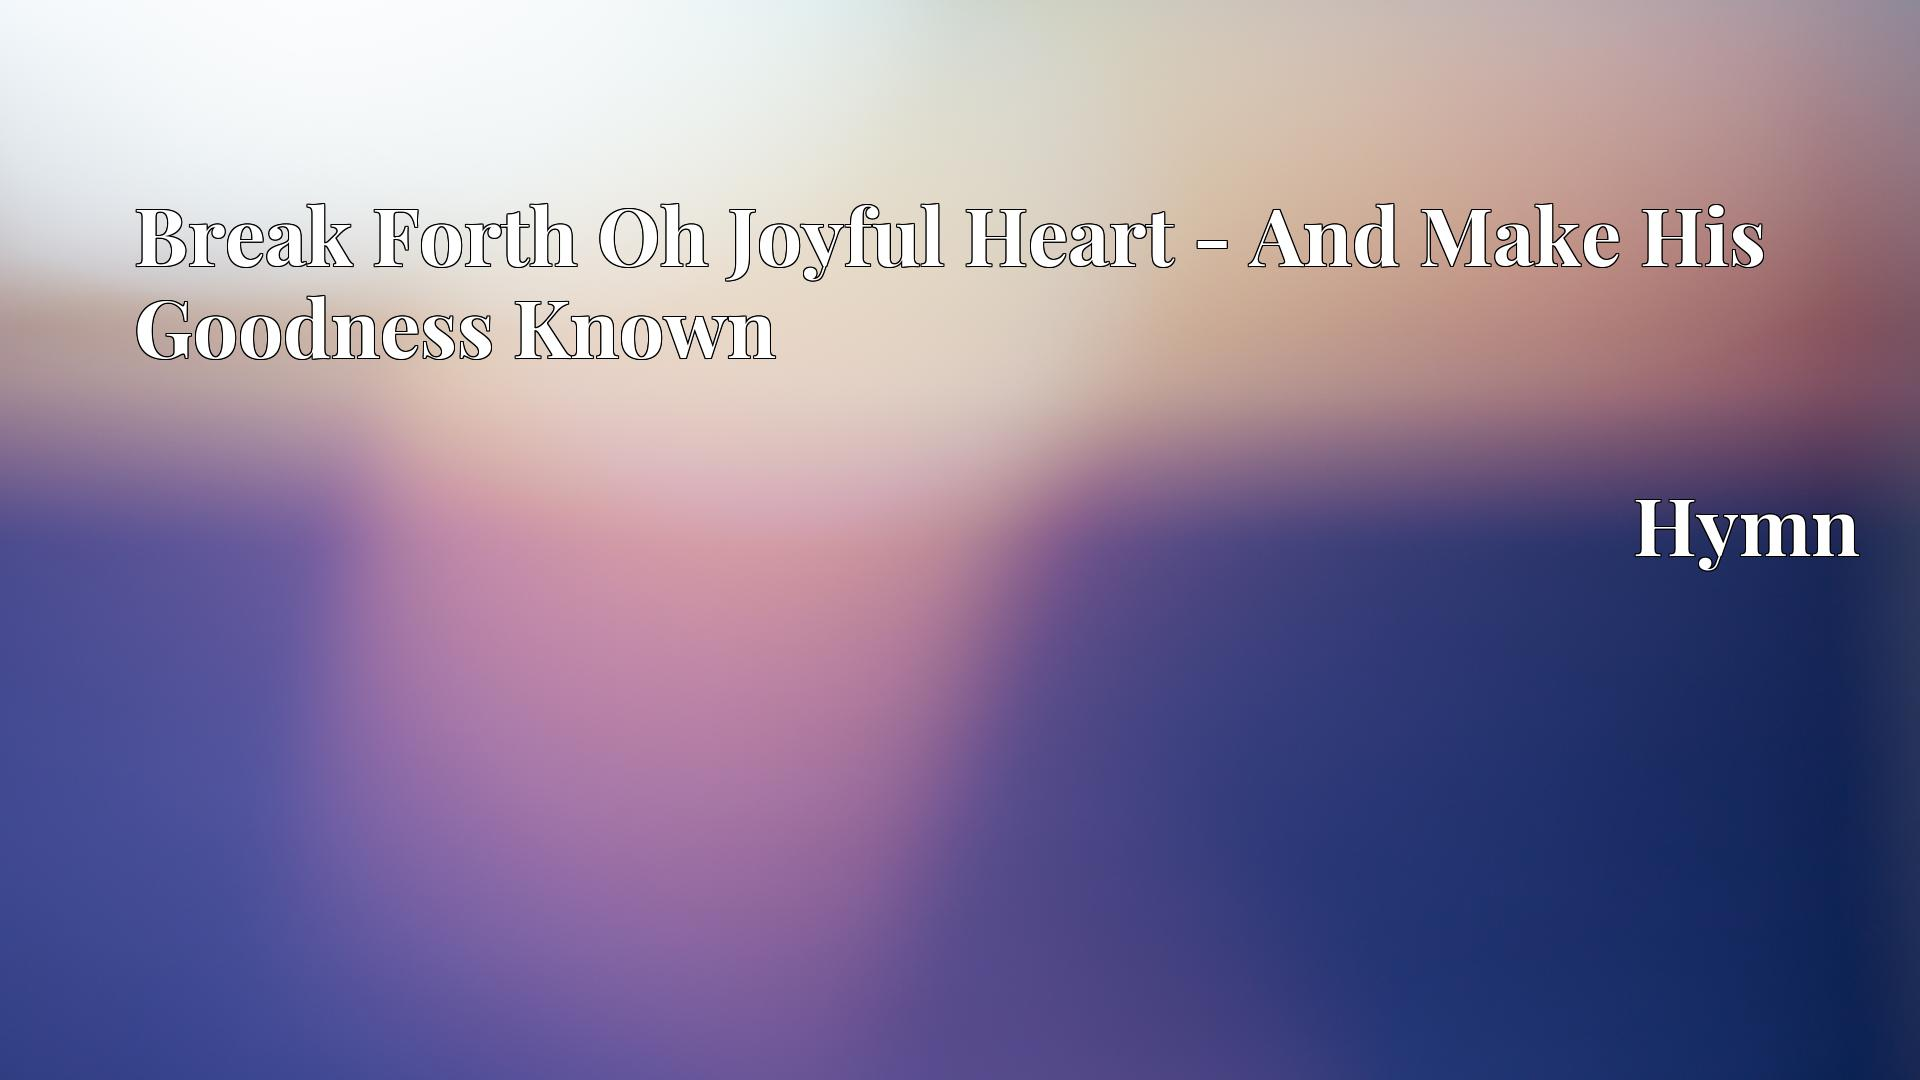 Break Forth Oh Joyful Heart - And Make His Goodness Known - Hymn